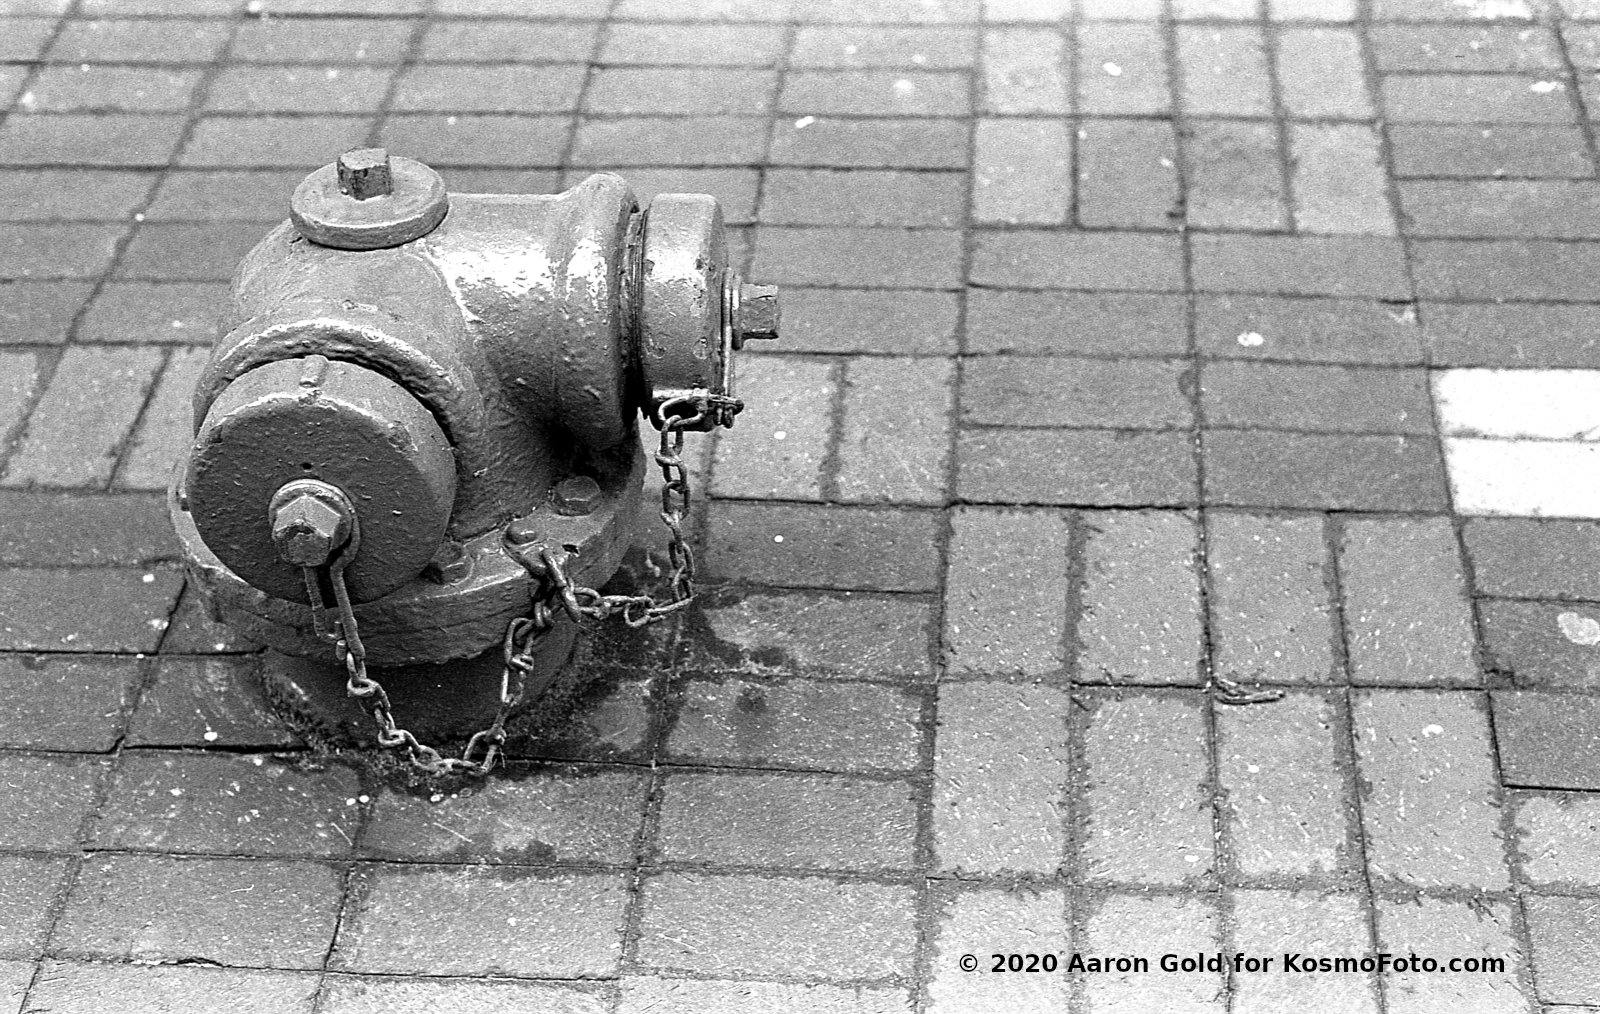 Fire hydrant (Pic: Aaron Gold)